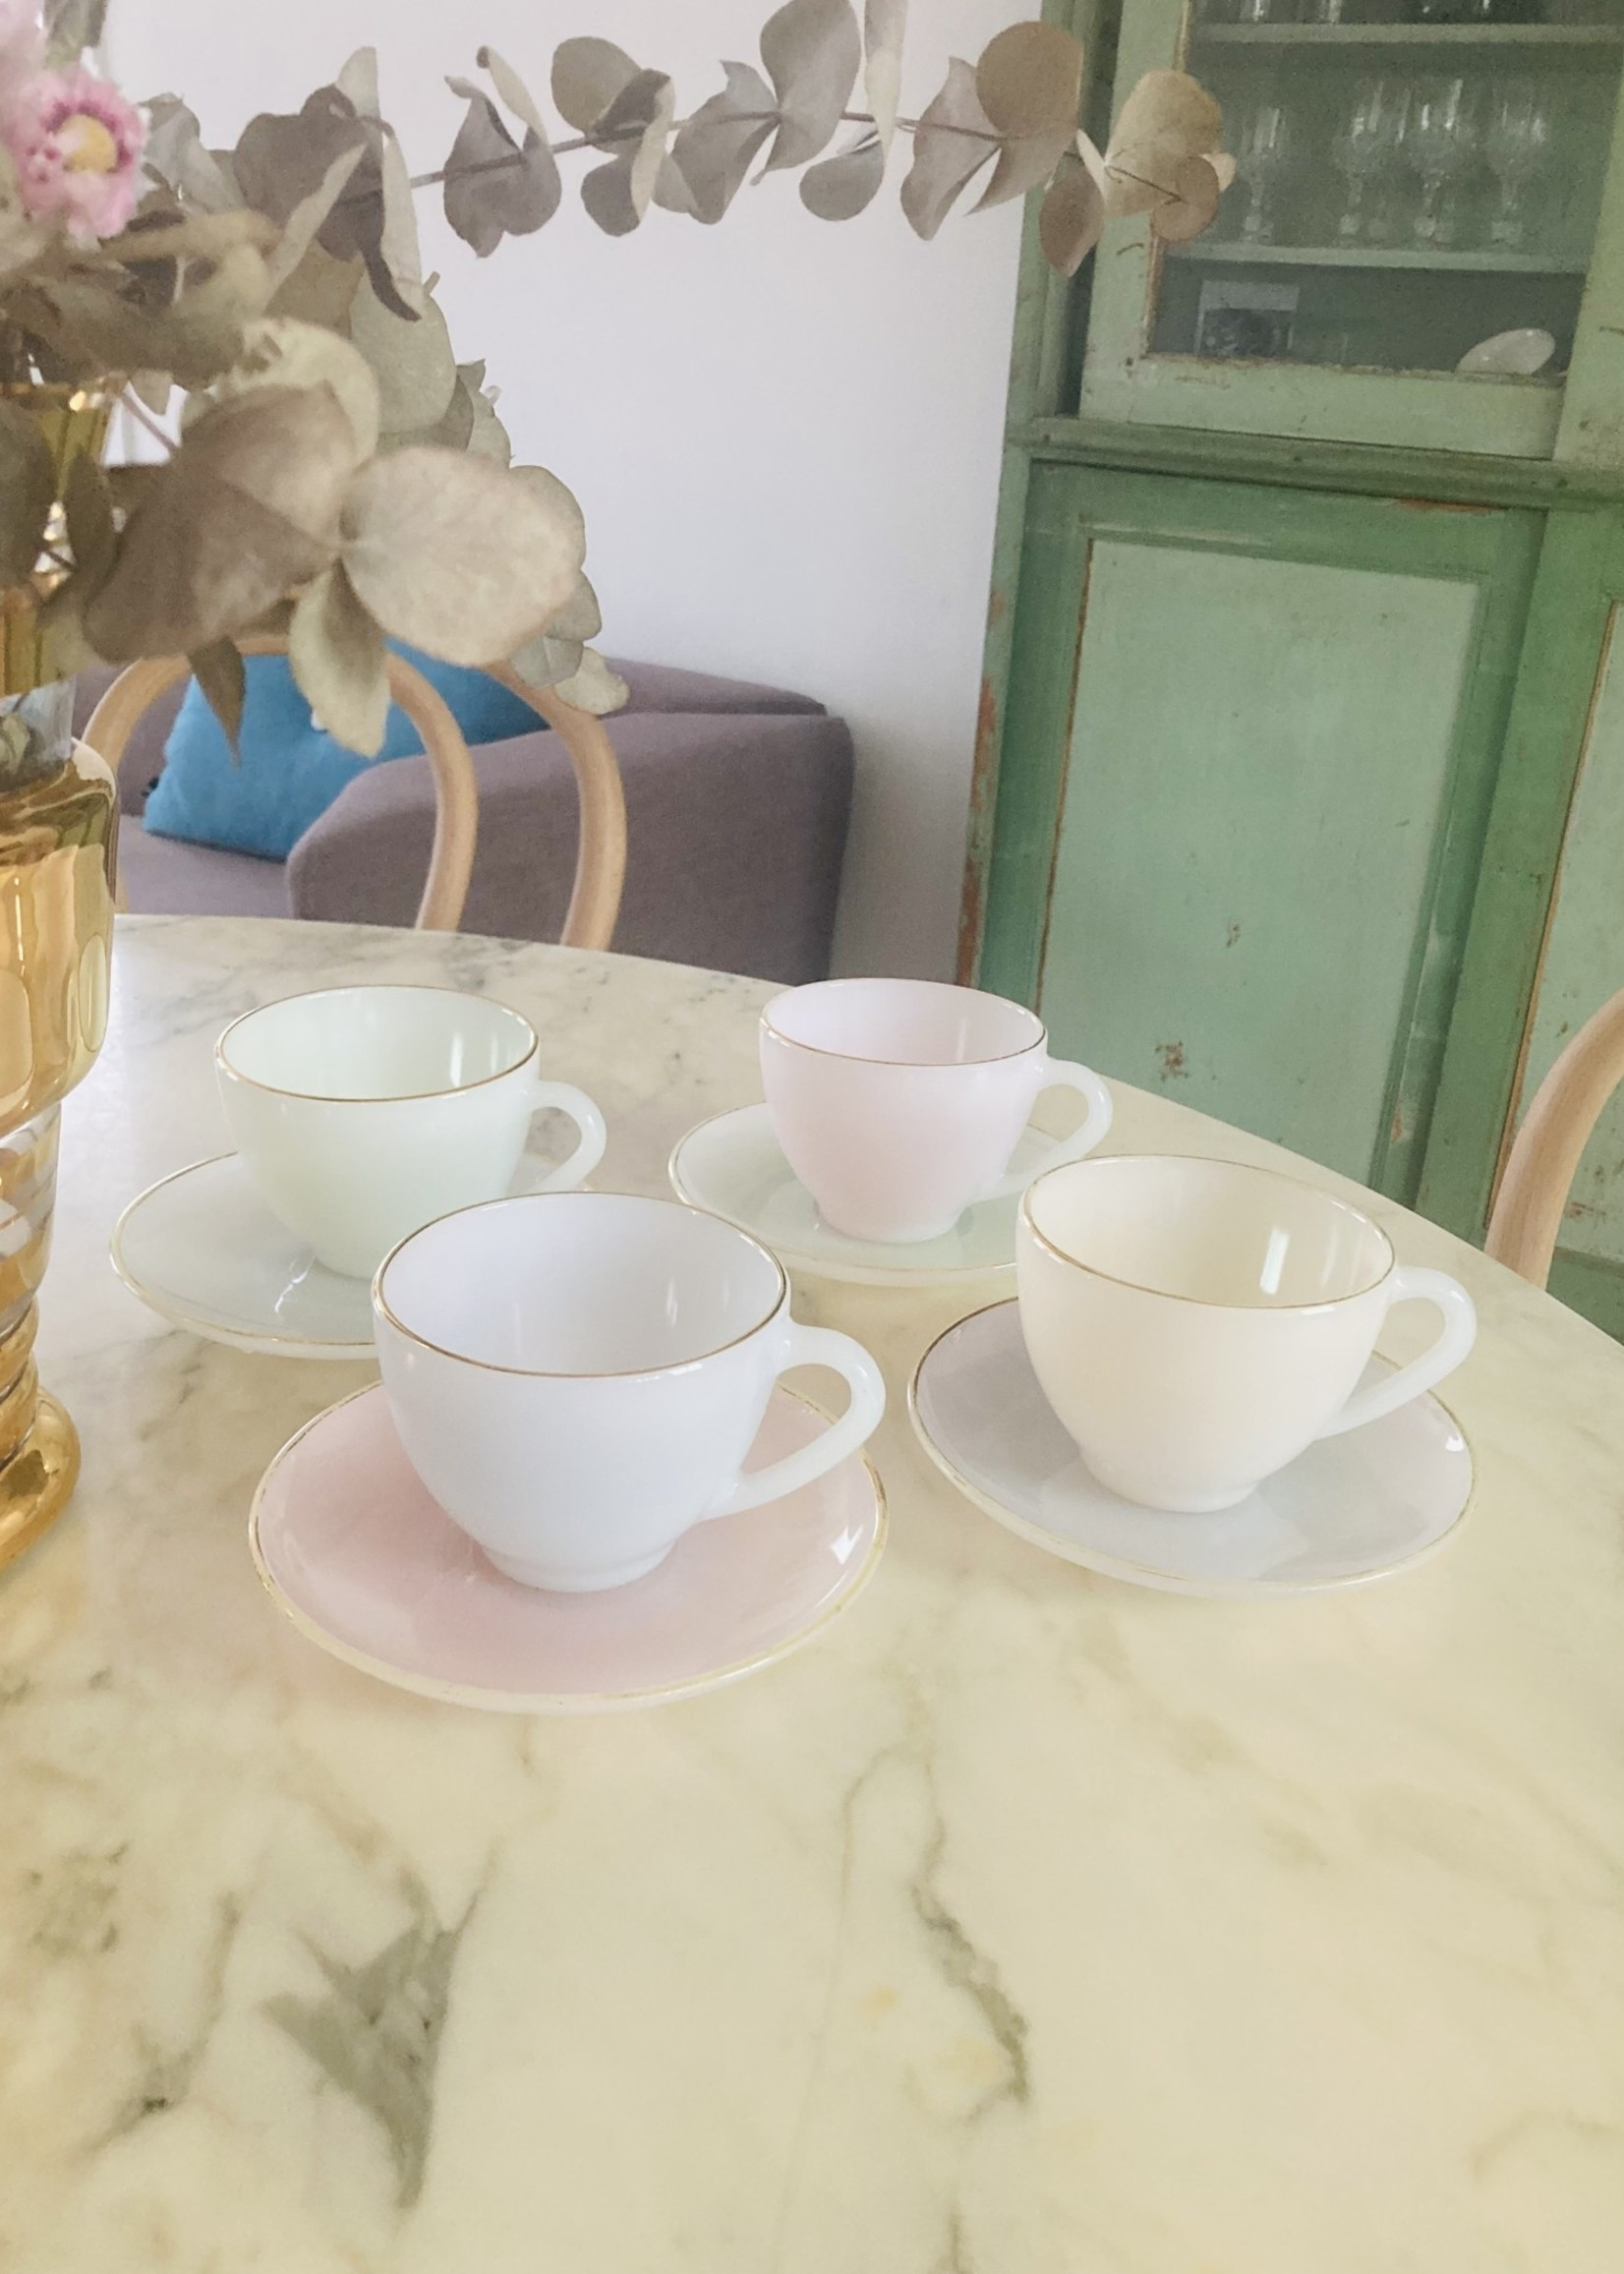 Set of 4 cups from Arcopal (large size)